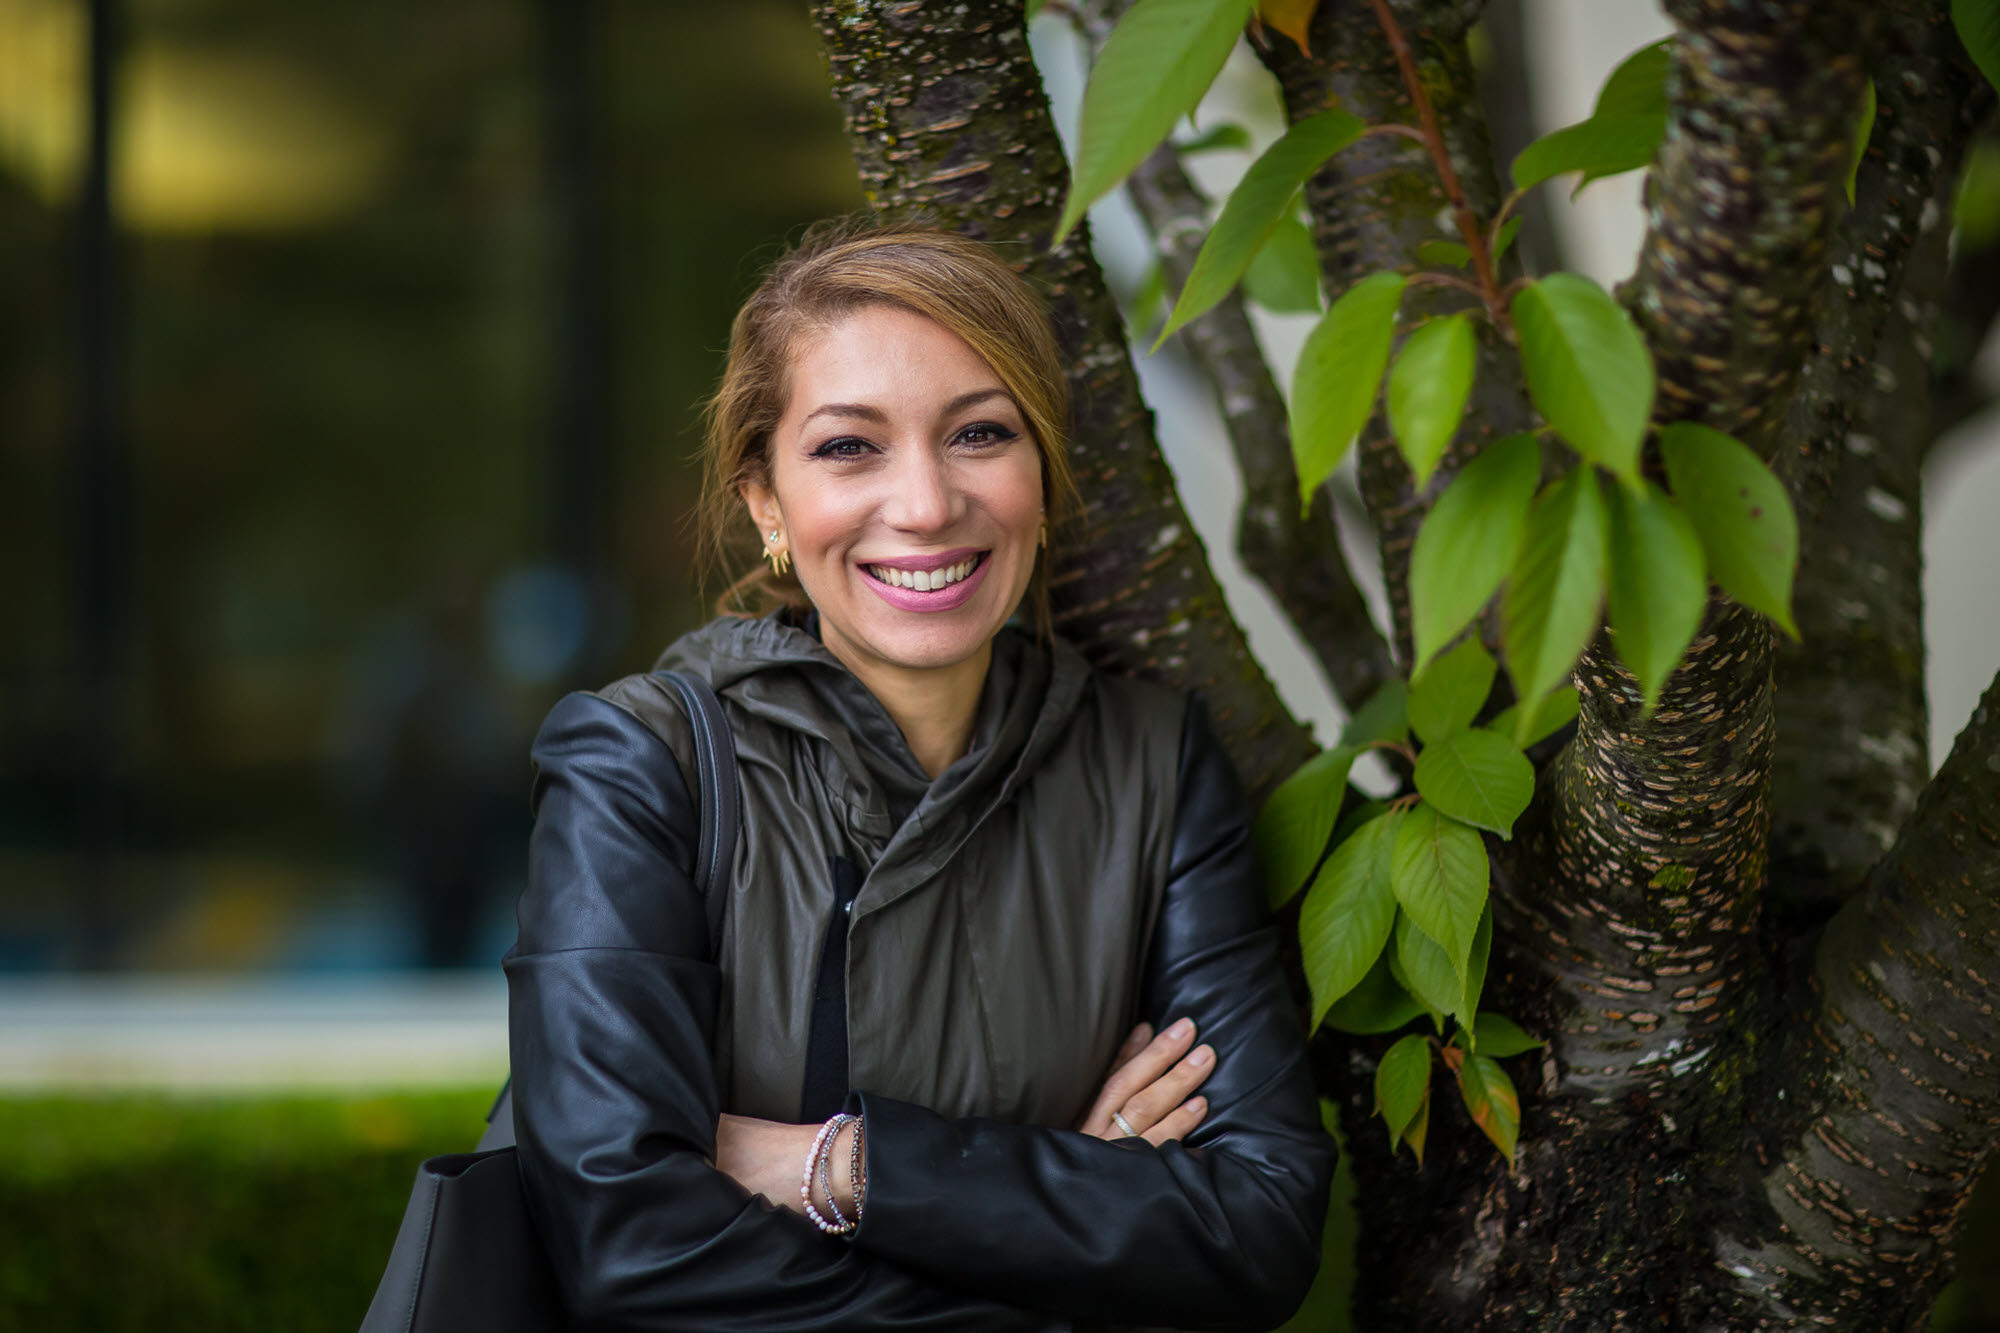 Mina Aitelhadj poses for a photo outside of her Microsoft building. She's leaning up against a tree trunk.